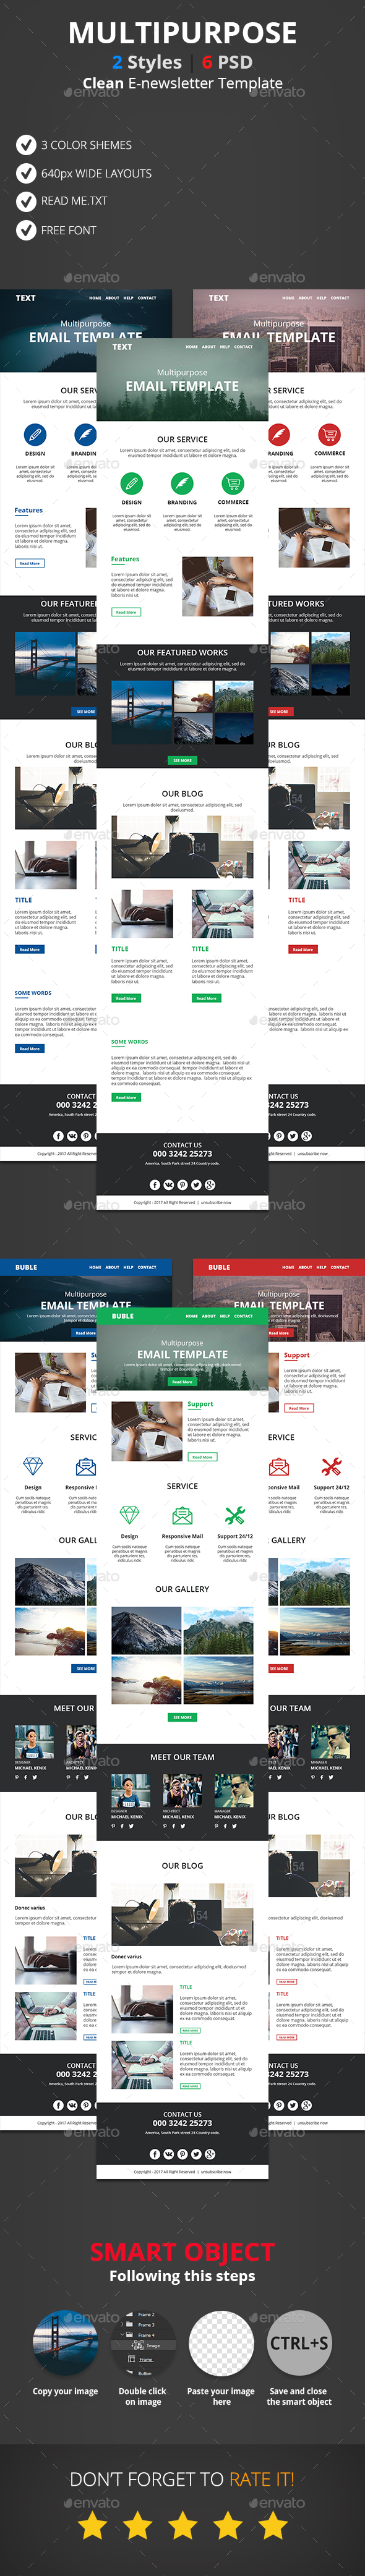 Clean Multipurpose E-newsletter Template - E-newsletters Web Elements